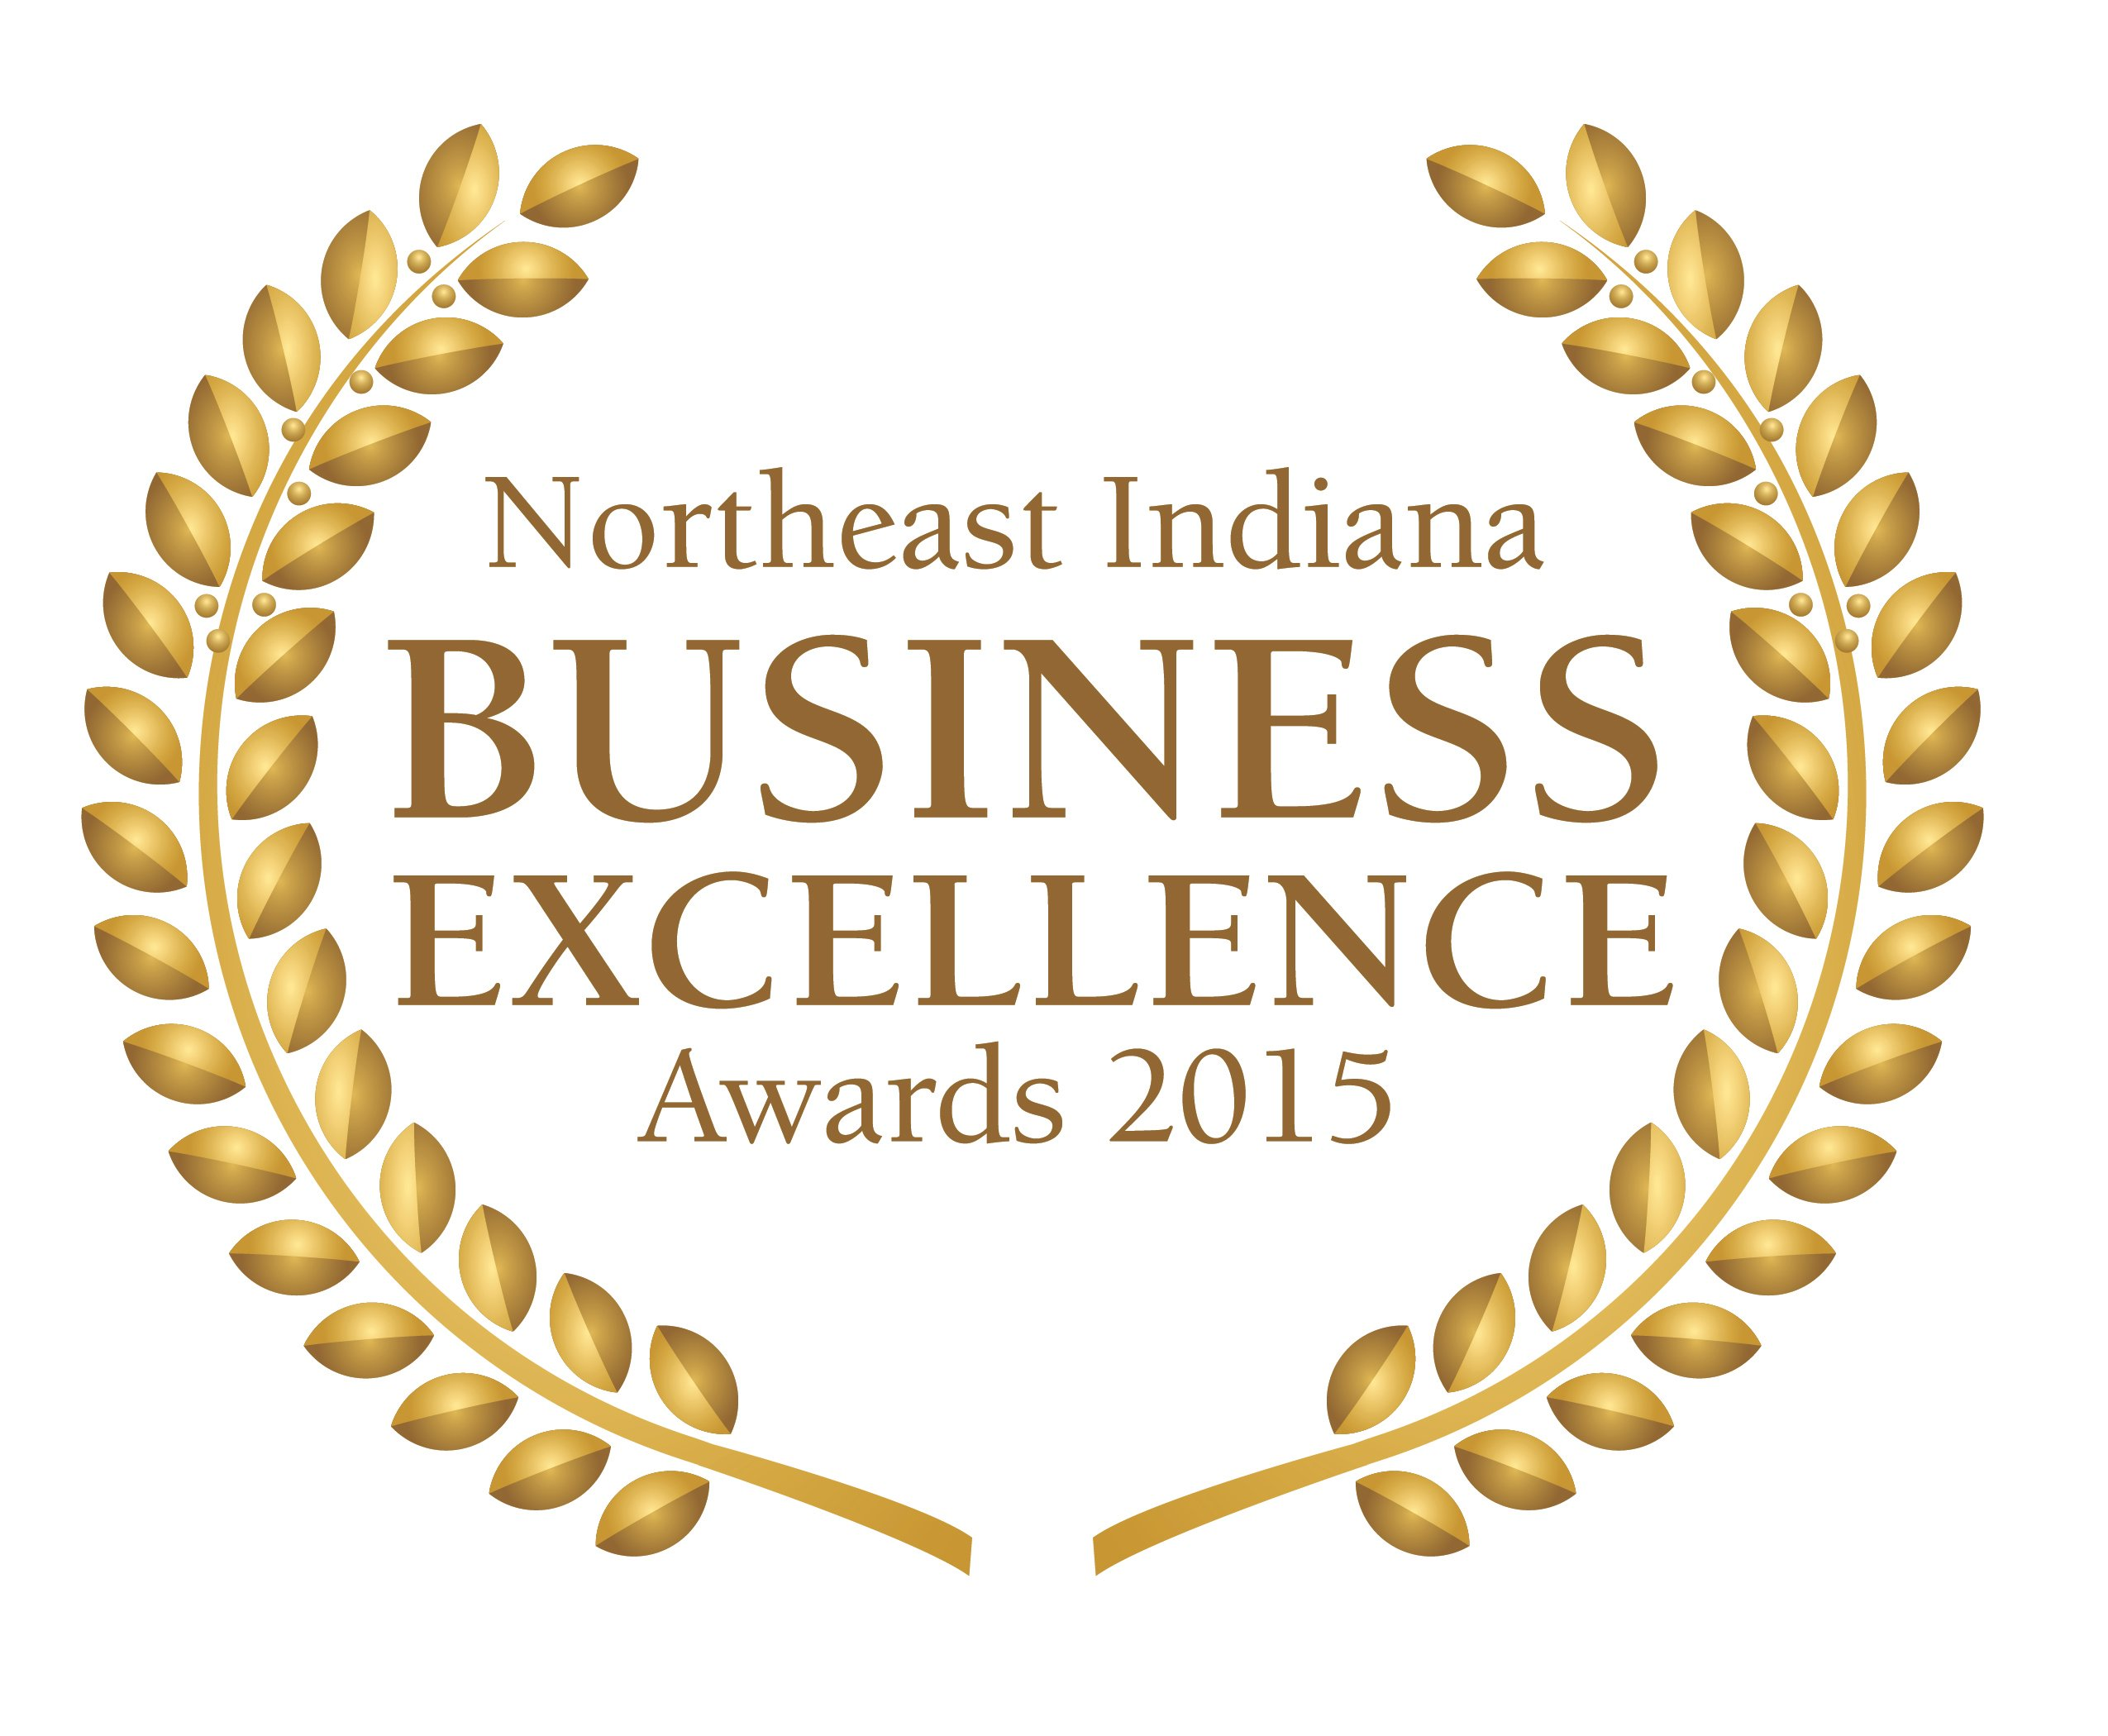 Northeast Indiana Business Excellence Awards